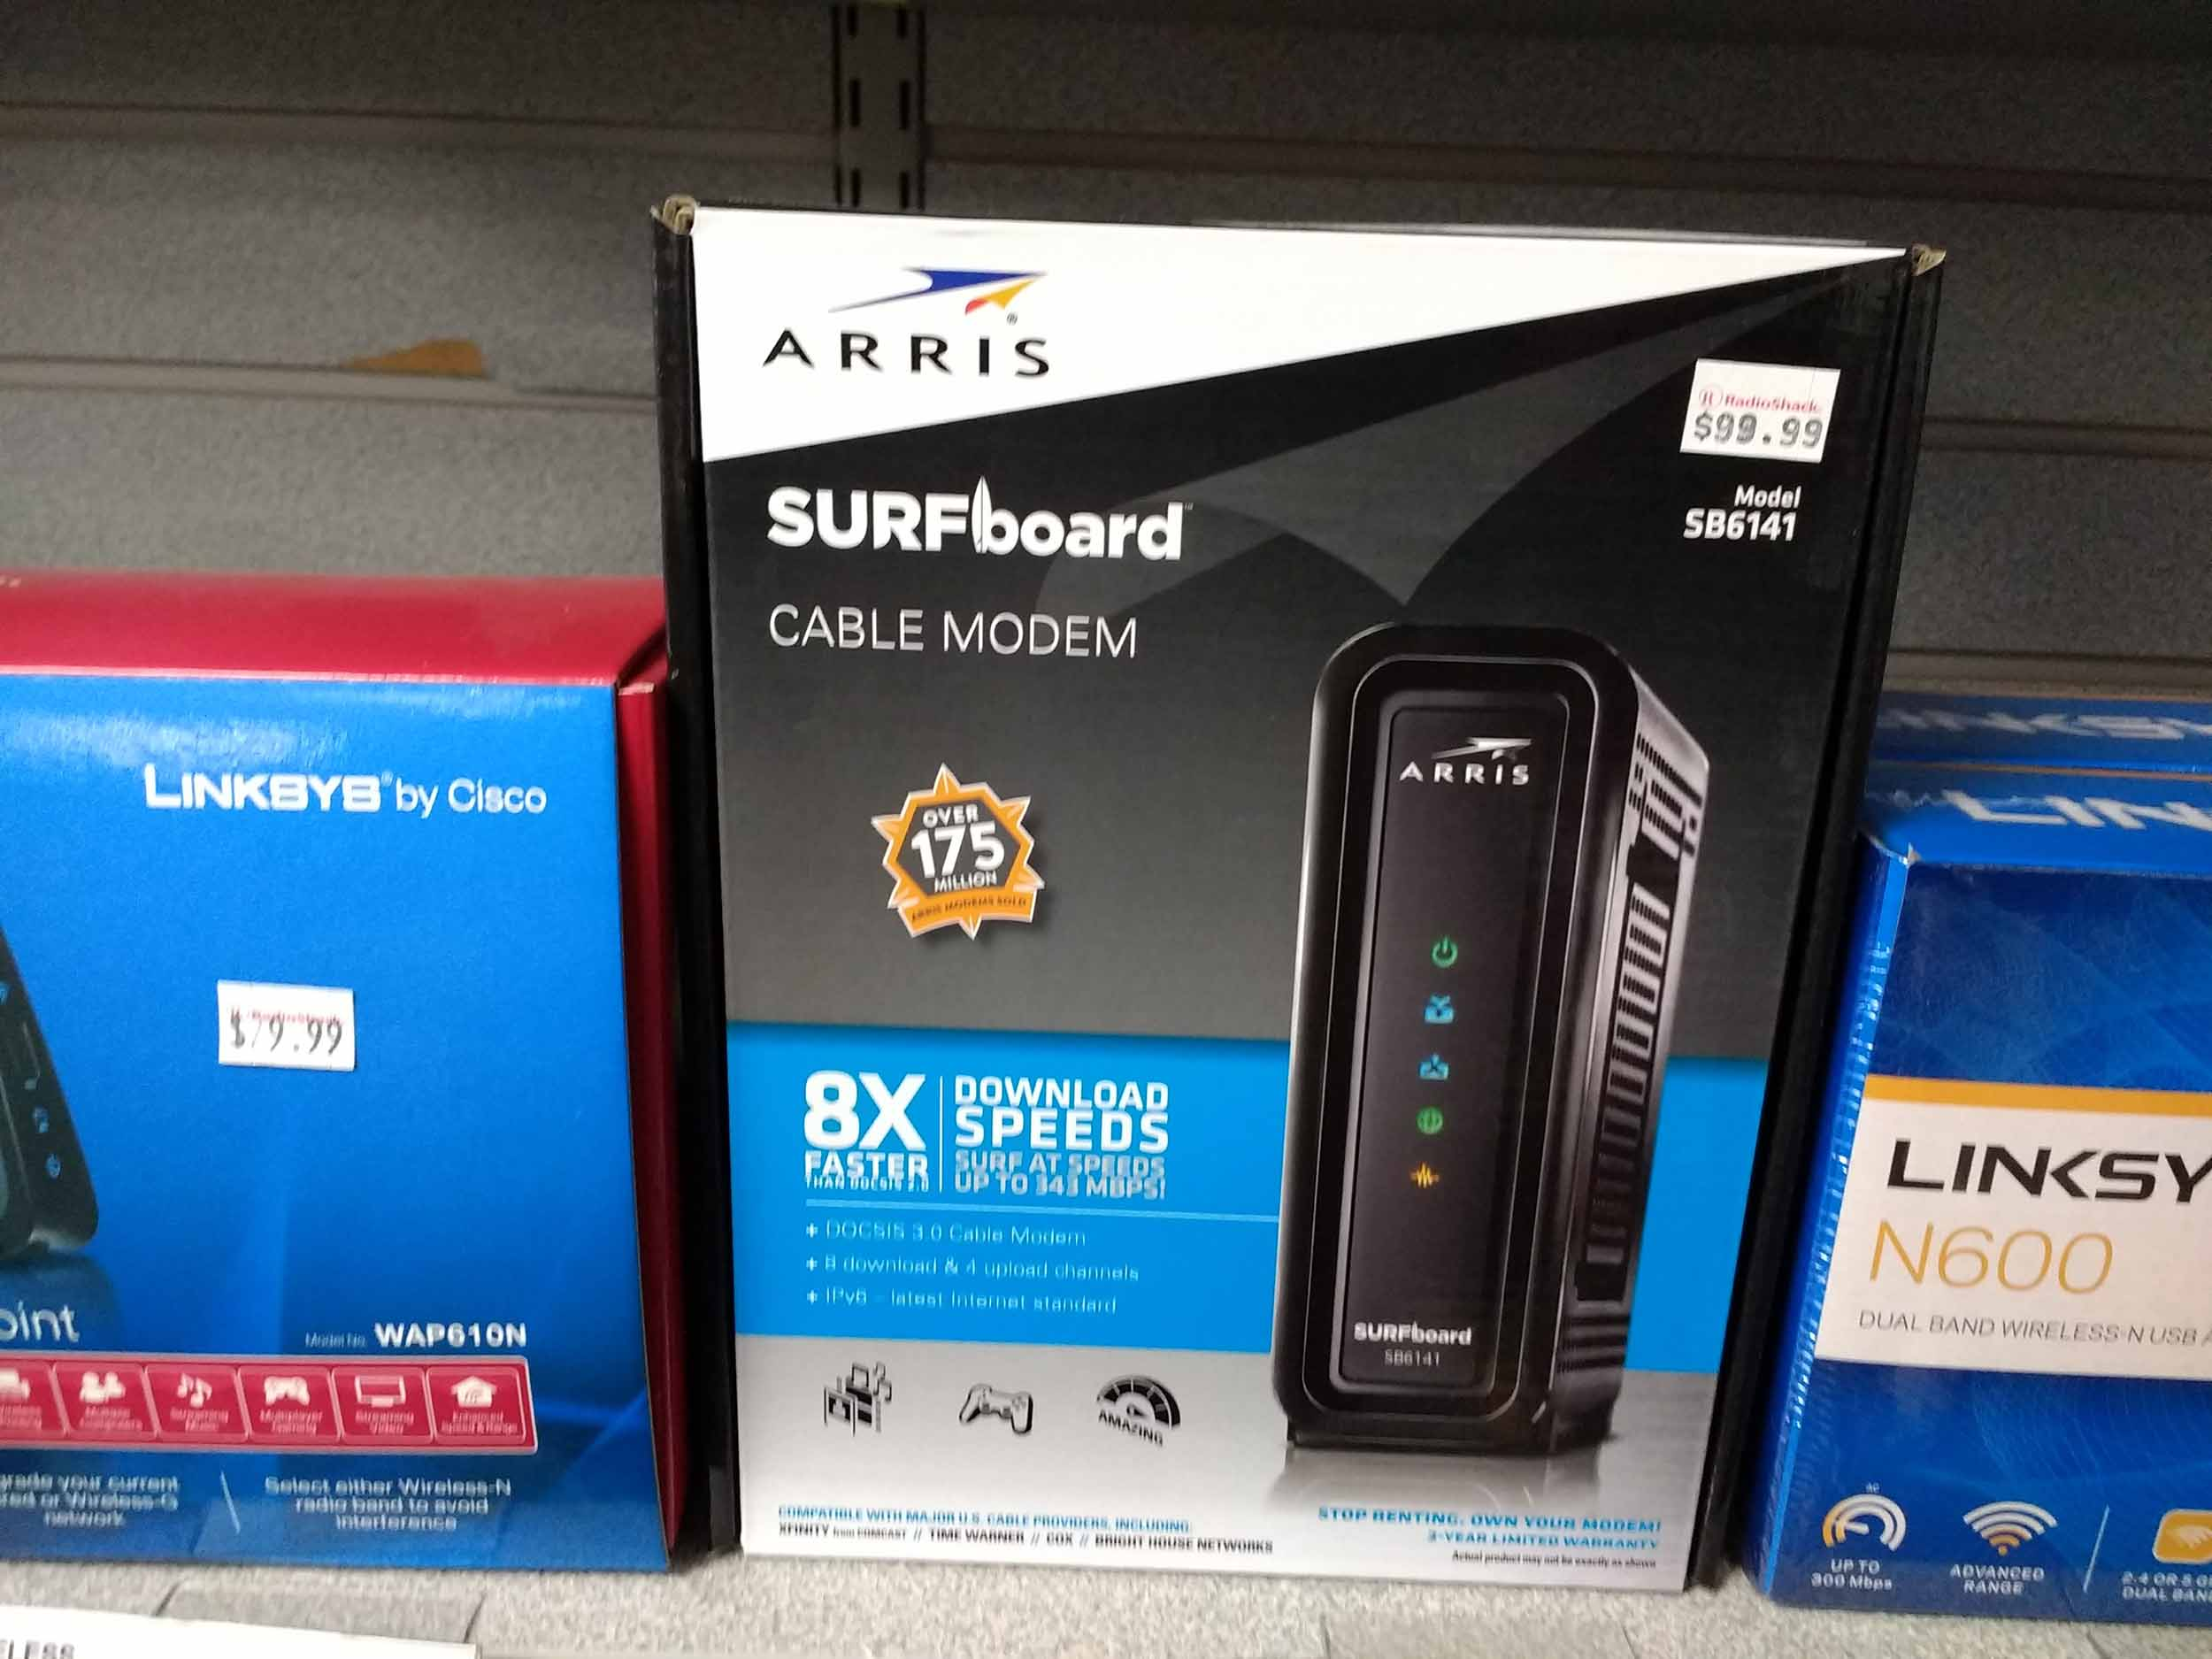 Cable modems in stock.